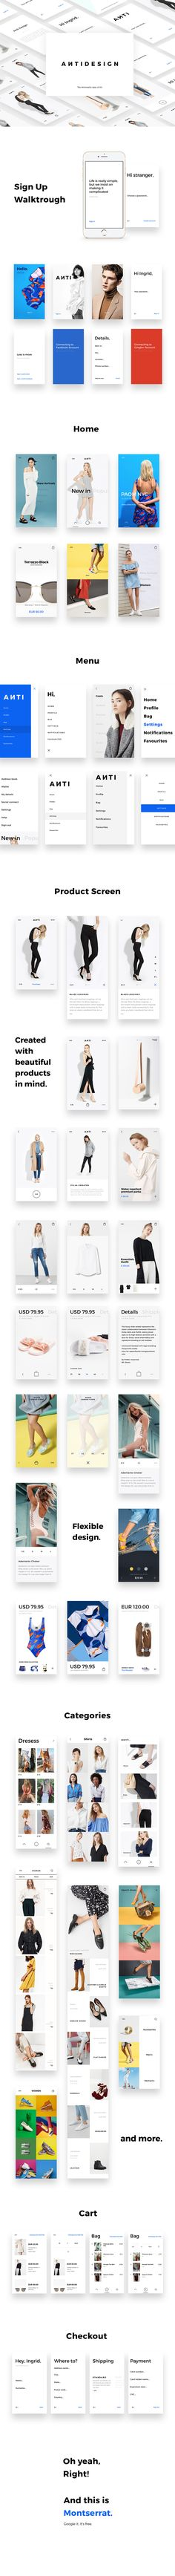 Tips, Tricks And Advice To Take Your Website Design To A New Level. Ui Design Mobile, App Ui Design, Web Design Trends, User Interface Design, Branding Design, Mobile App Ui, Ui Design Inspiration, Ui Web, Design Graphique